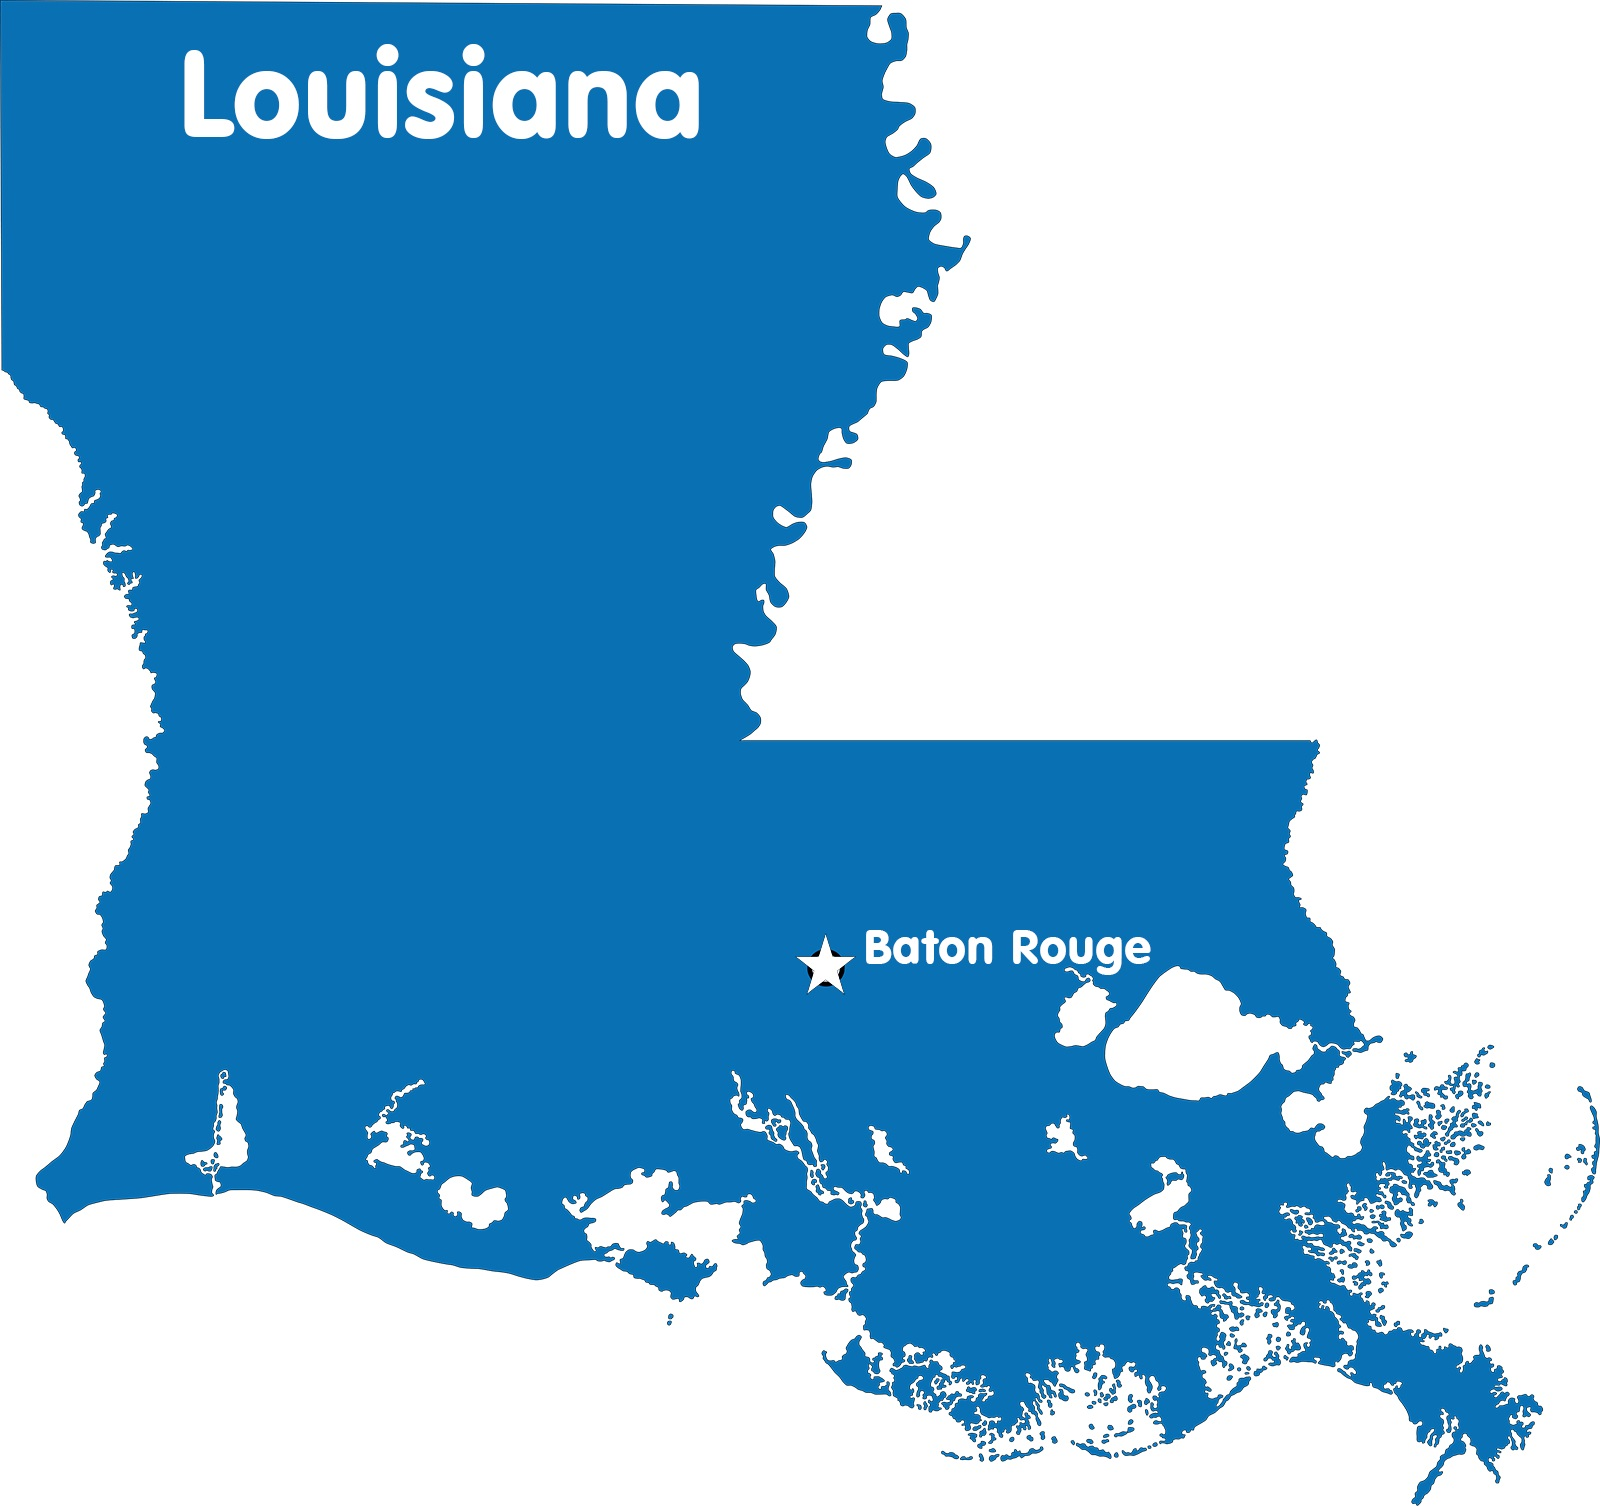 Map of Louisiana | Political, County, Geography, Transportation, And Cities Map